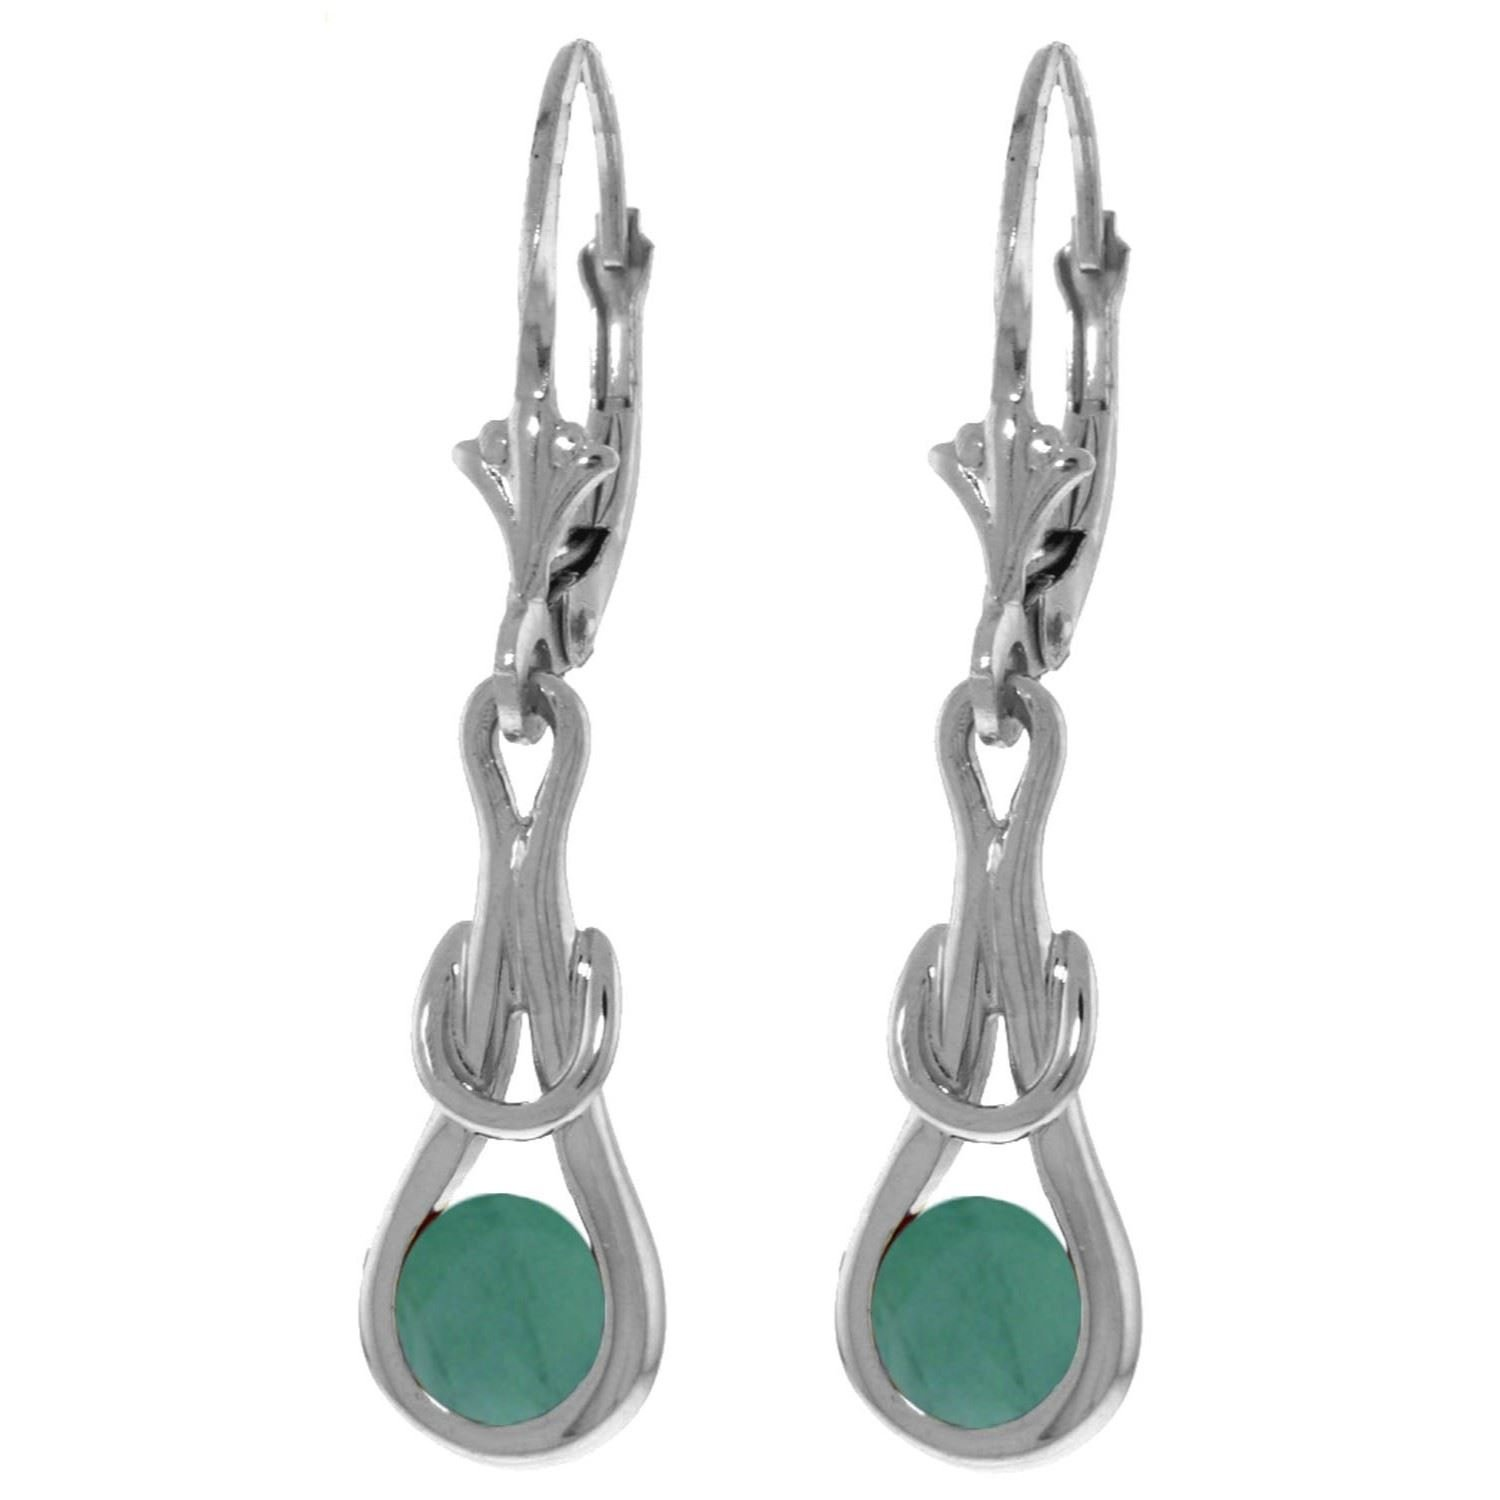 ALARRI 1.3 Carat 14K Solid White Gold Then There Was Love Emerald Earrings